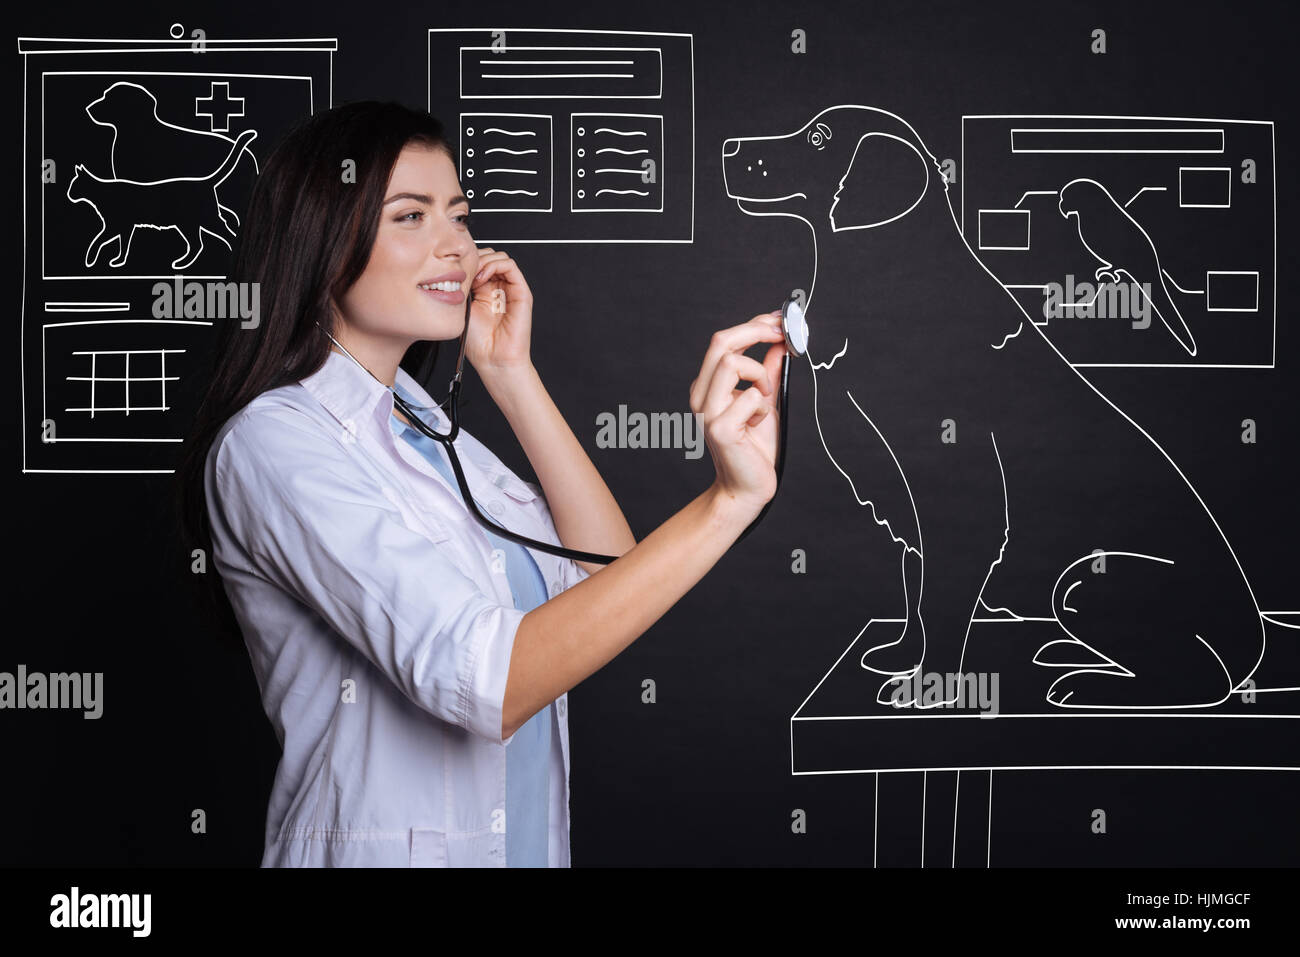 Positive female veterinarian examining a dog. - Stock Image